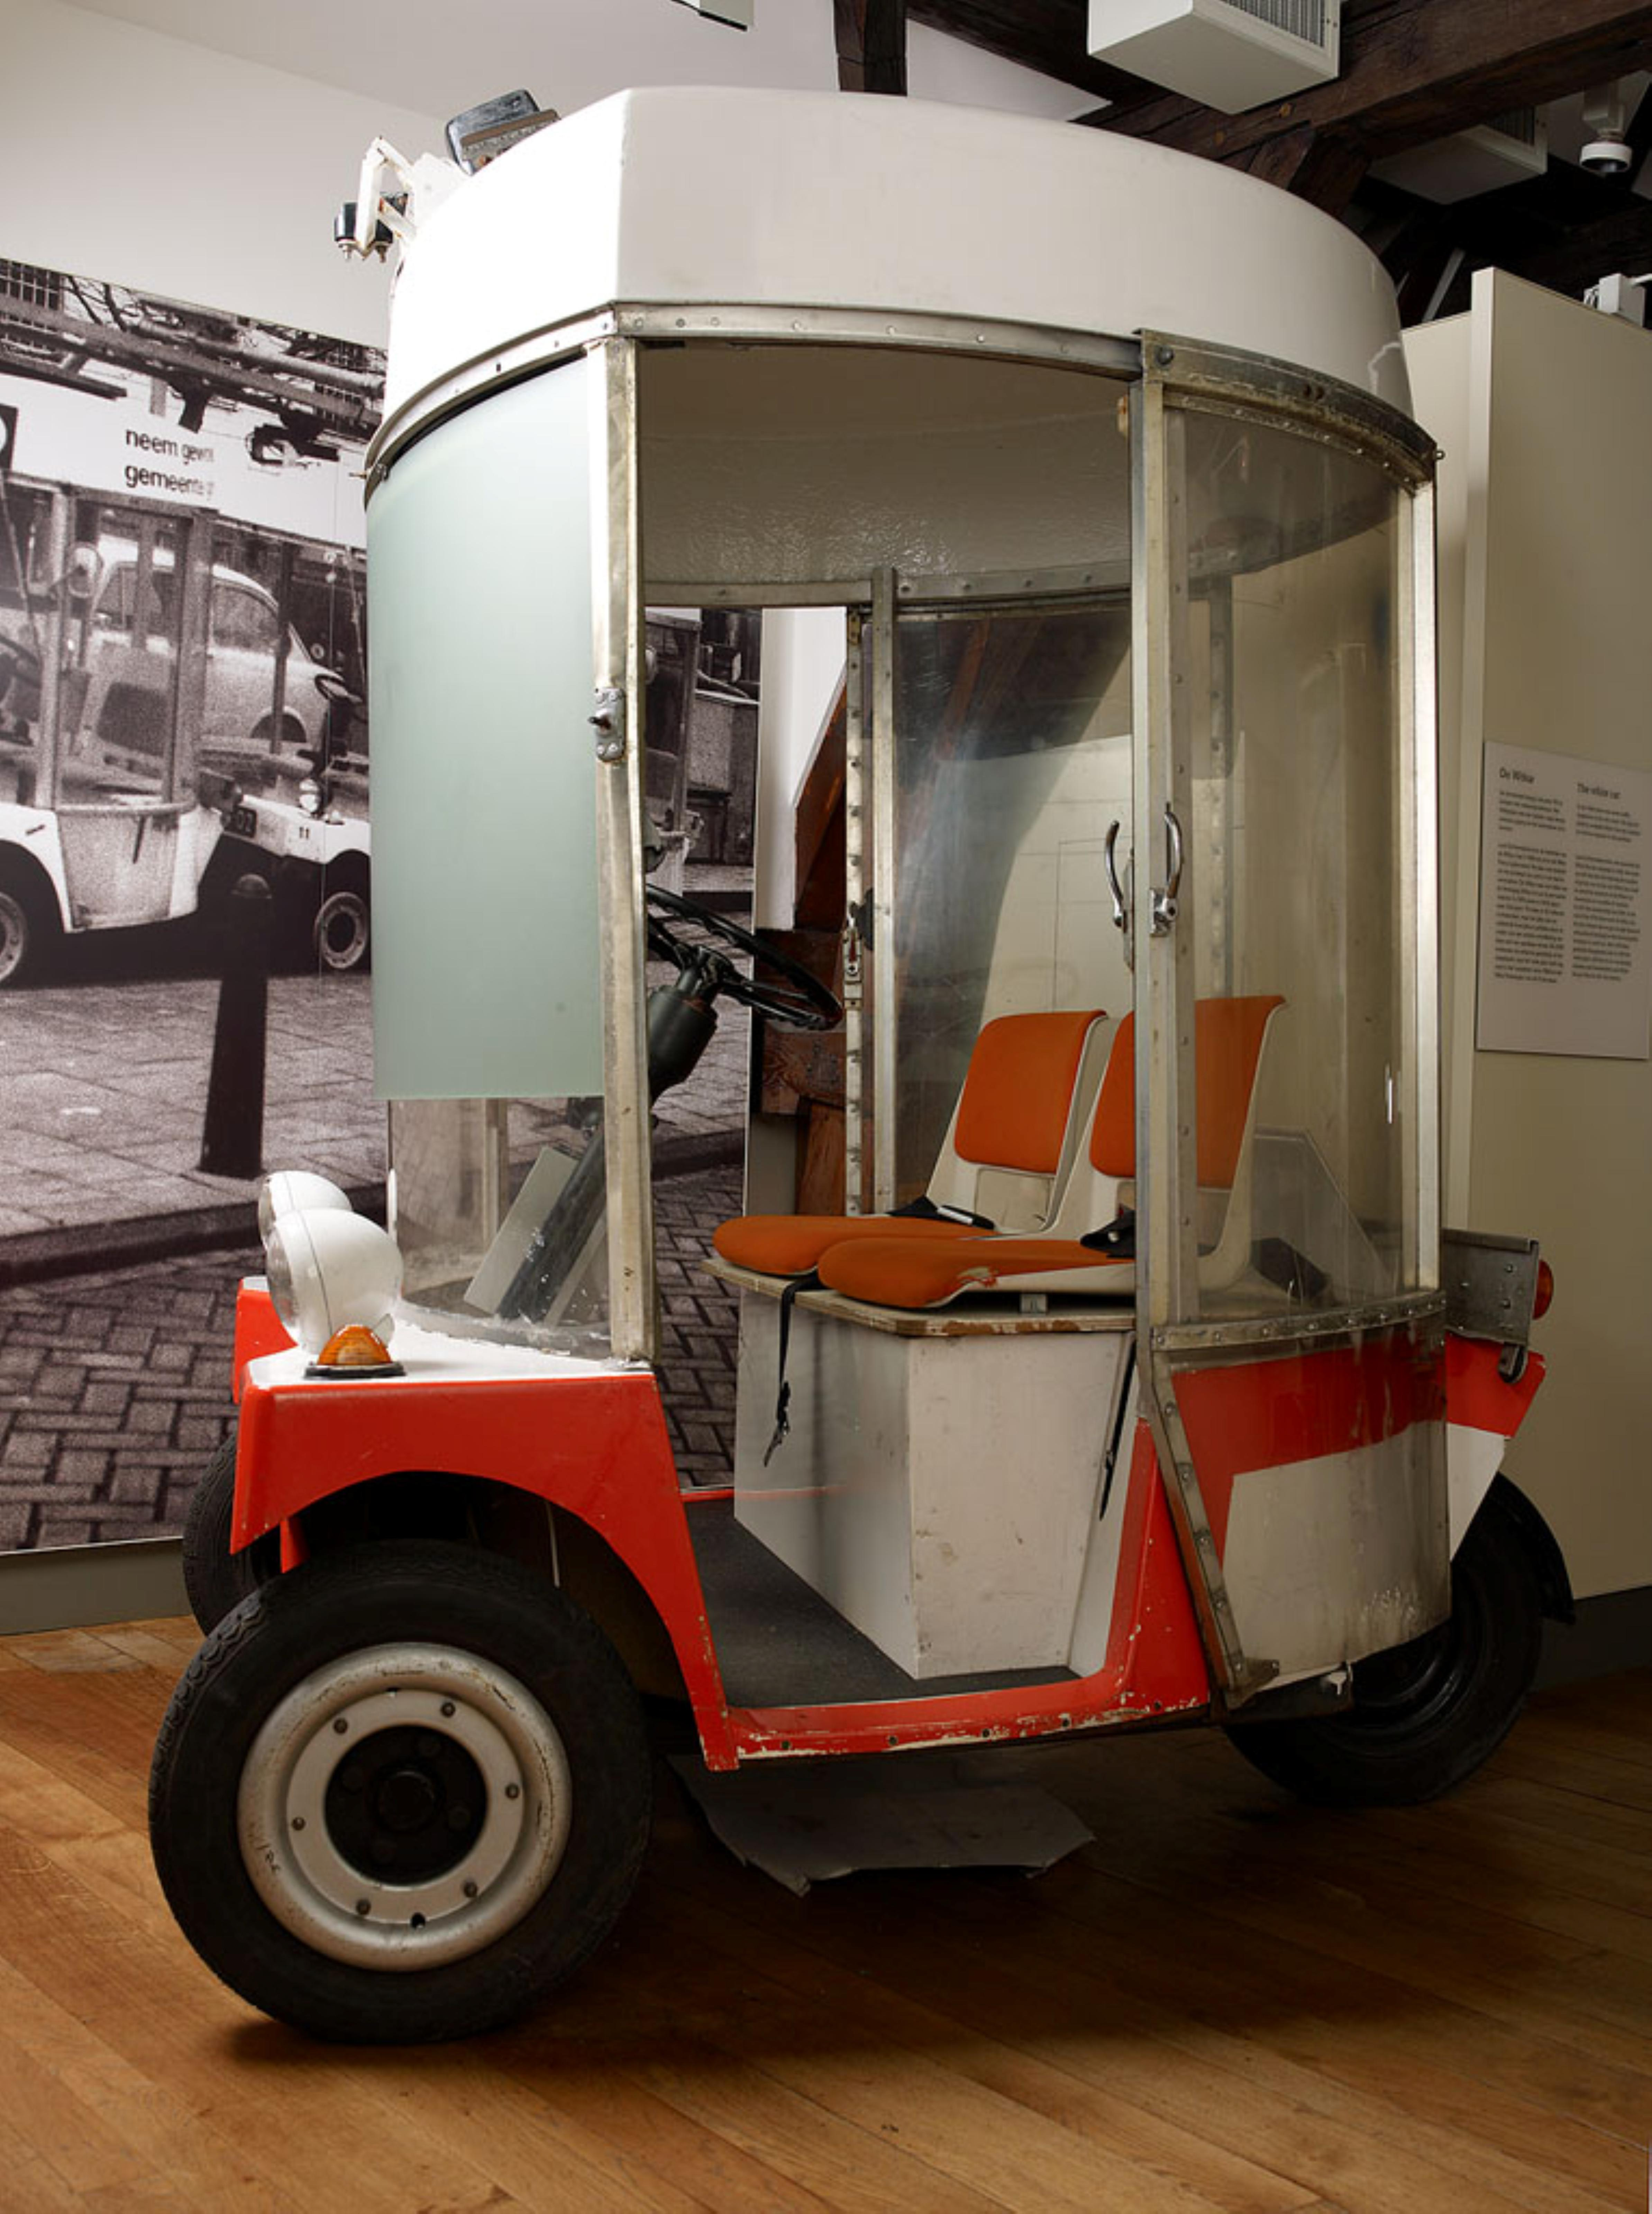 Nikola Tesla World Changing Inventions Discoveries Gallery 1 together with Photos The Best Farmers Inventions Of 2015 furthermore Wi ar also Motocar furthermore Sinclair C5 Ceases Production. on electric car inventor